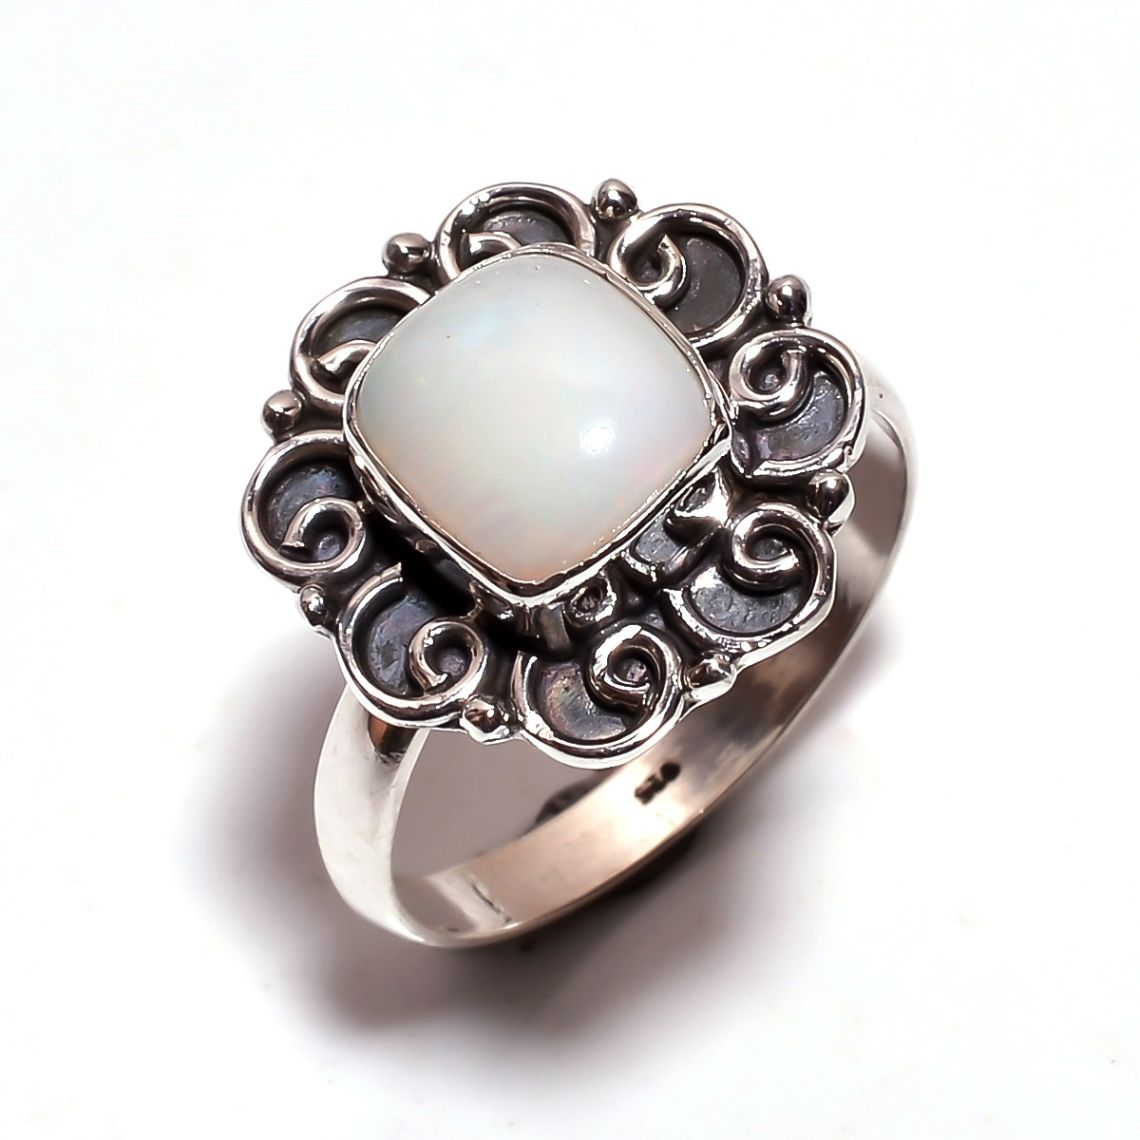 Ethiopian Opal Gemstone 925 Sterling Silver Ring Size 8.25